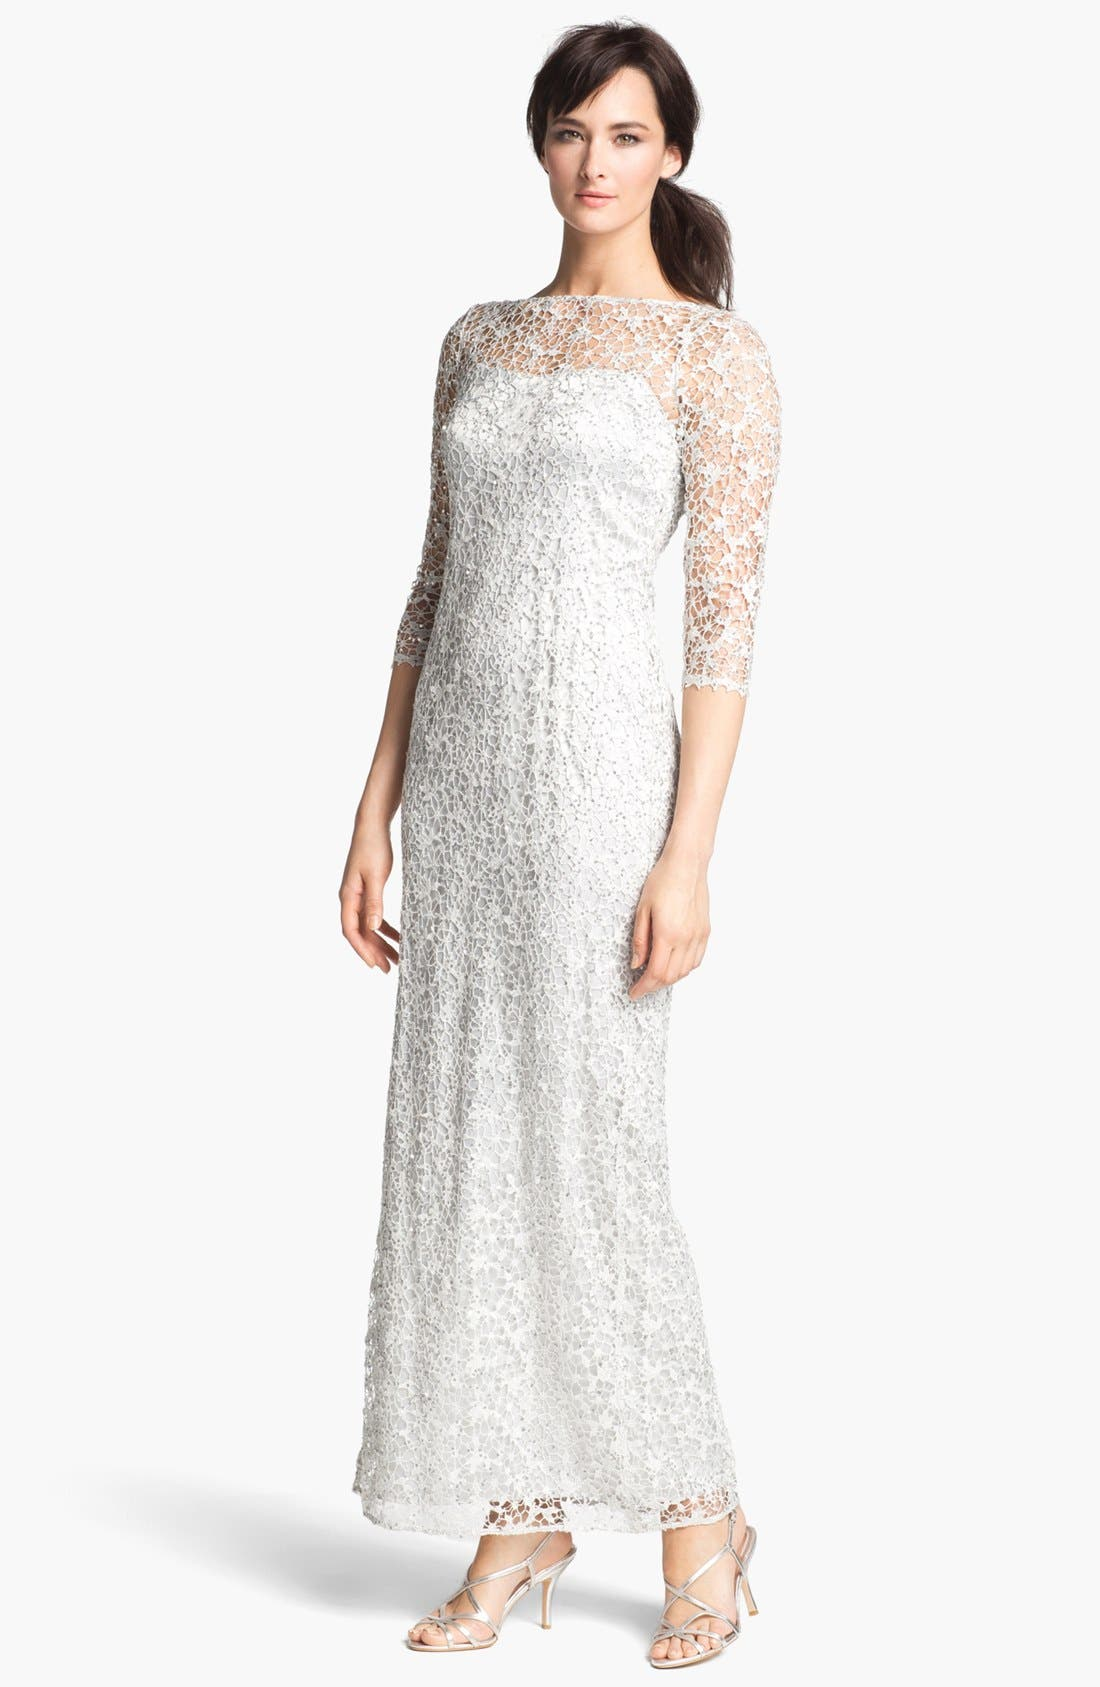 Alternate Image 1 Selected - Kay Unger Embellished Illusion Neck Lace Gown